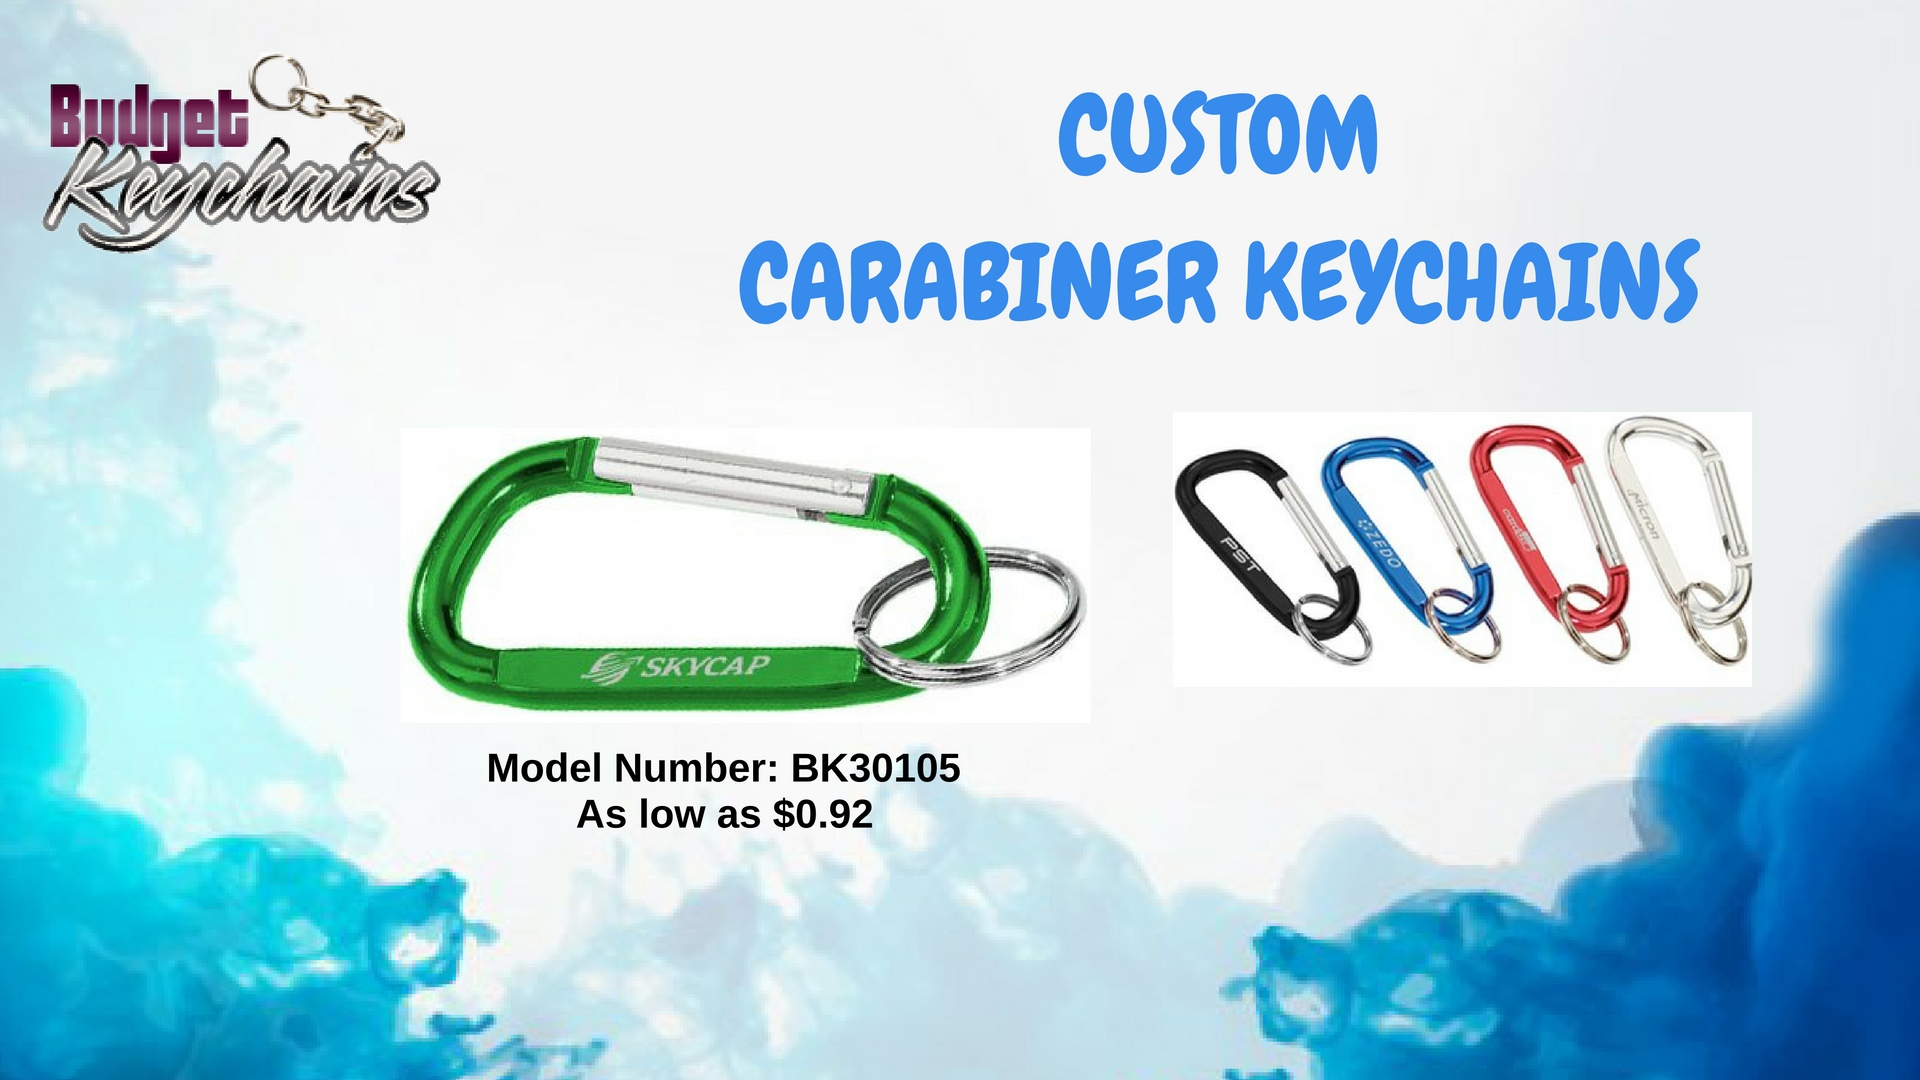 things-to-do-with-a-carabiner-keychain